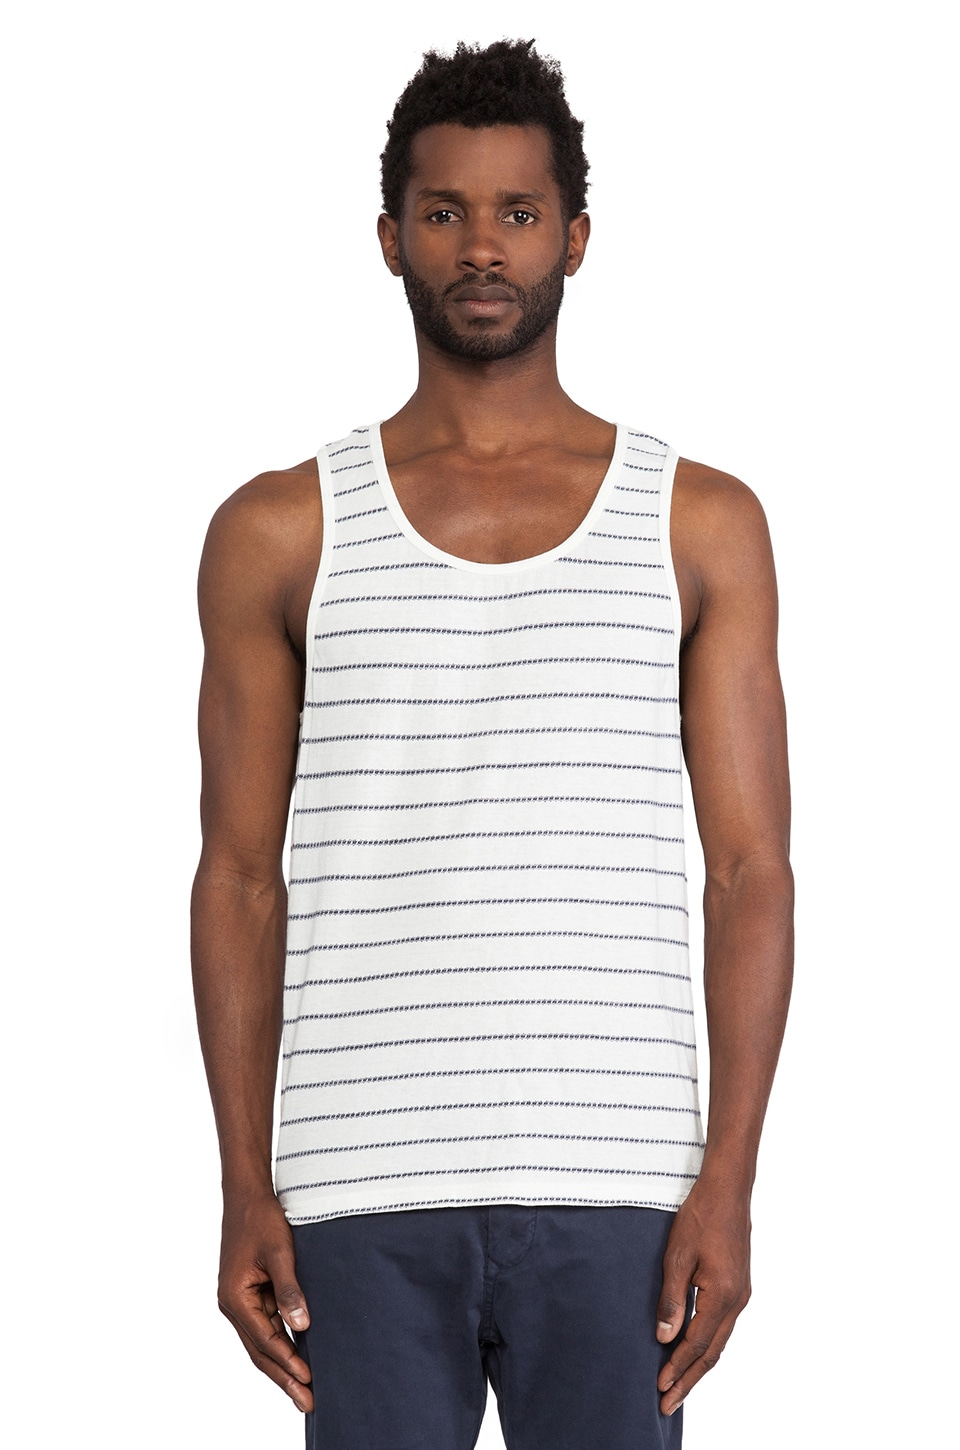 Burkman Bros. Tank Top in White & Navy